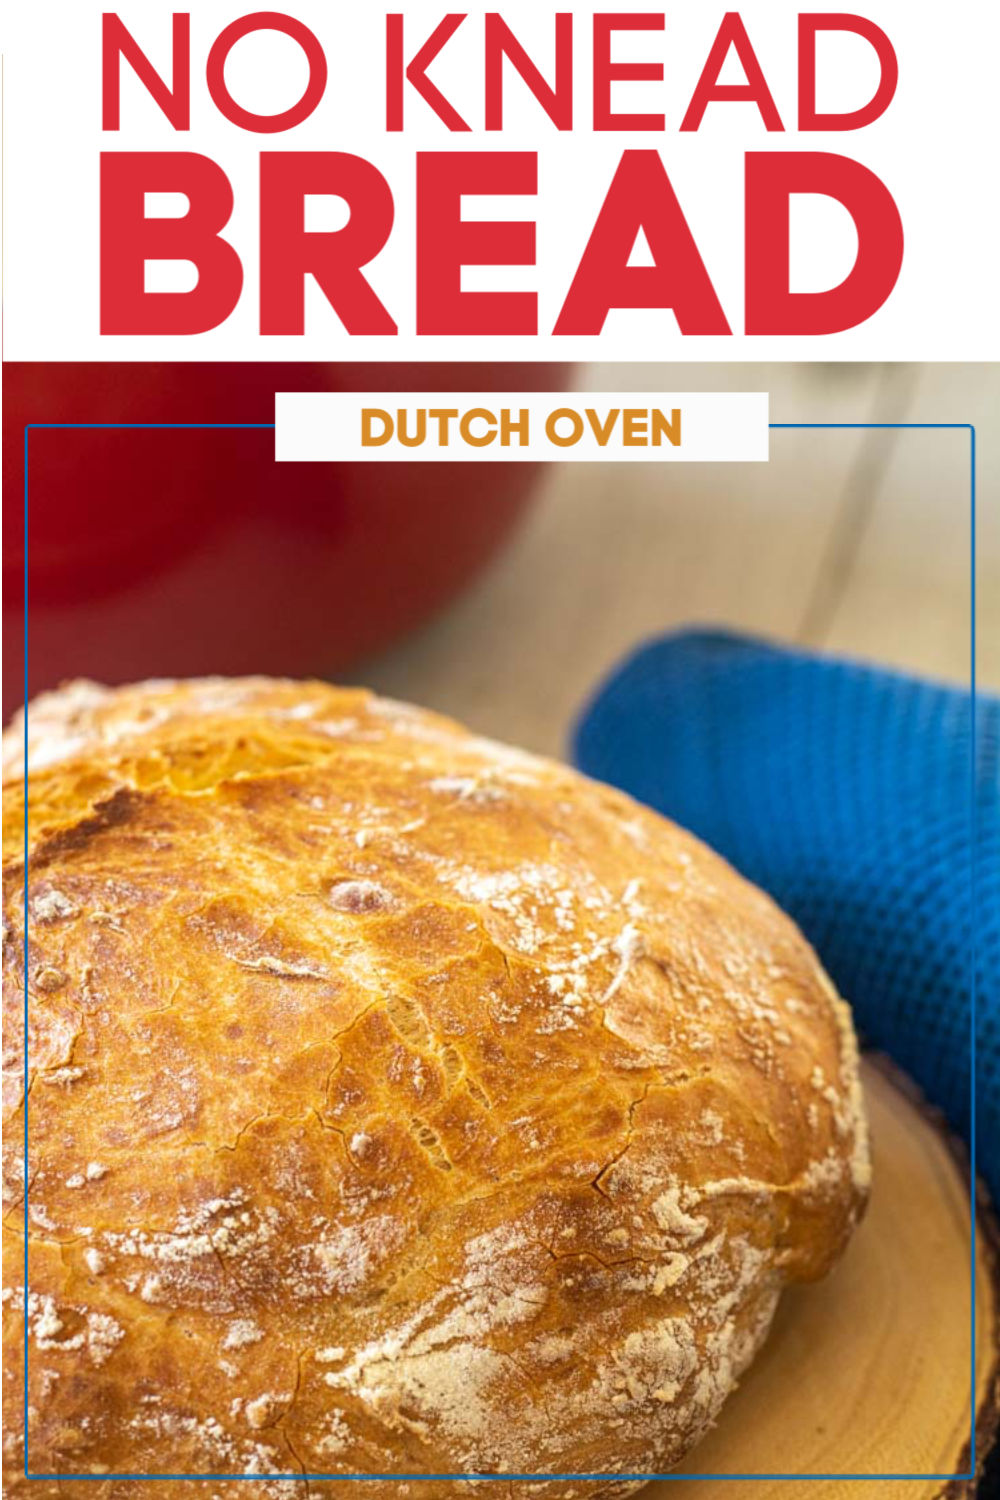 No knead dutch oven bread is a classic old recipe that will get you hooked on baking. This does not require any complicated preparation. Let it rise on the counter overnight and bake it the next day for a soft and fluffy bread with a crispy crust. #noknead #bread #dutchoven #castiron #yeast